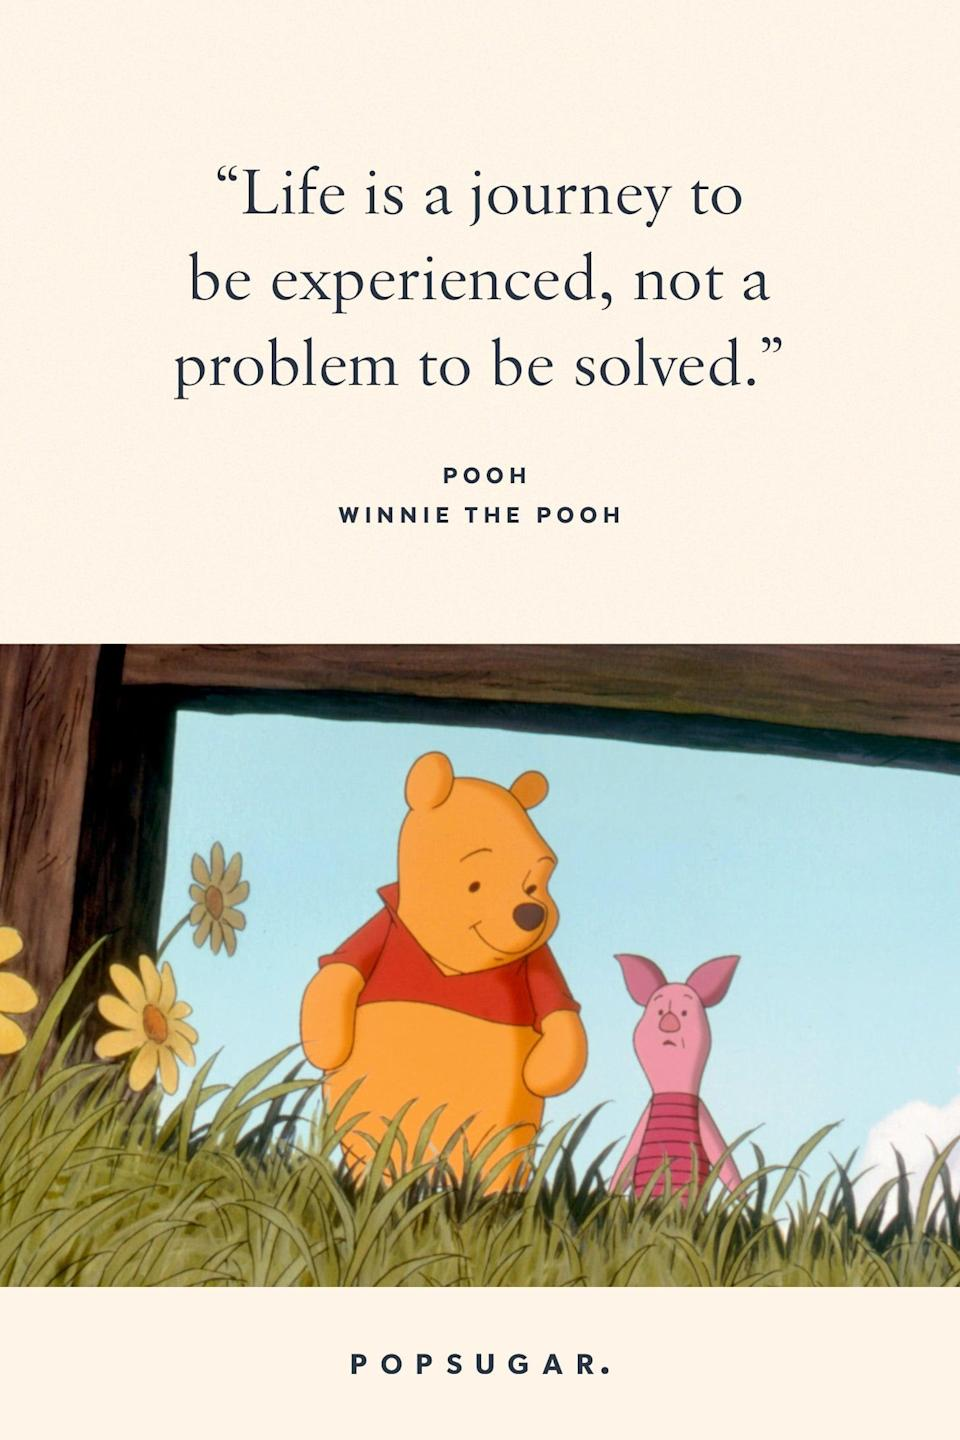 "<p>""Life is a journey to be experienced, not a problem to be solved."" - Pooh, <b>Winnie the Pooh</b></p>"